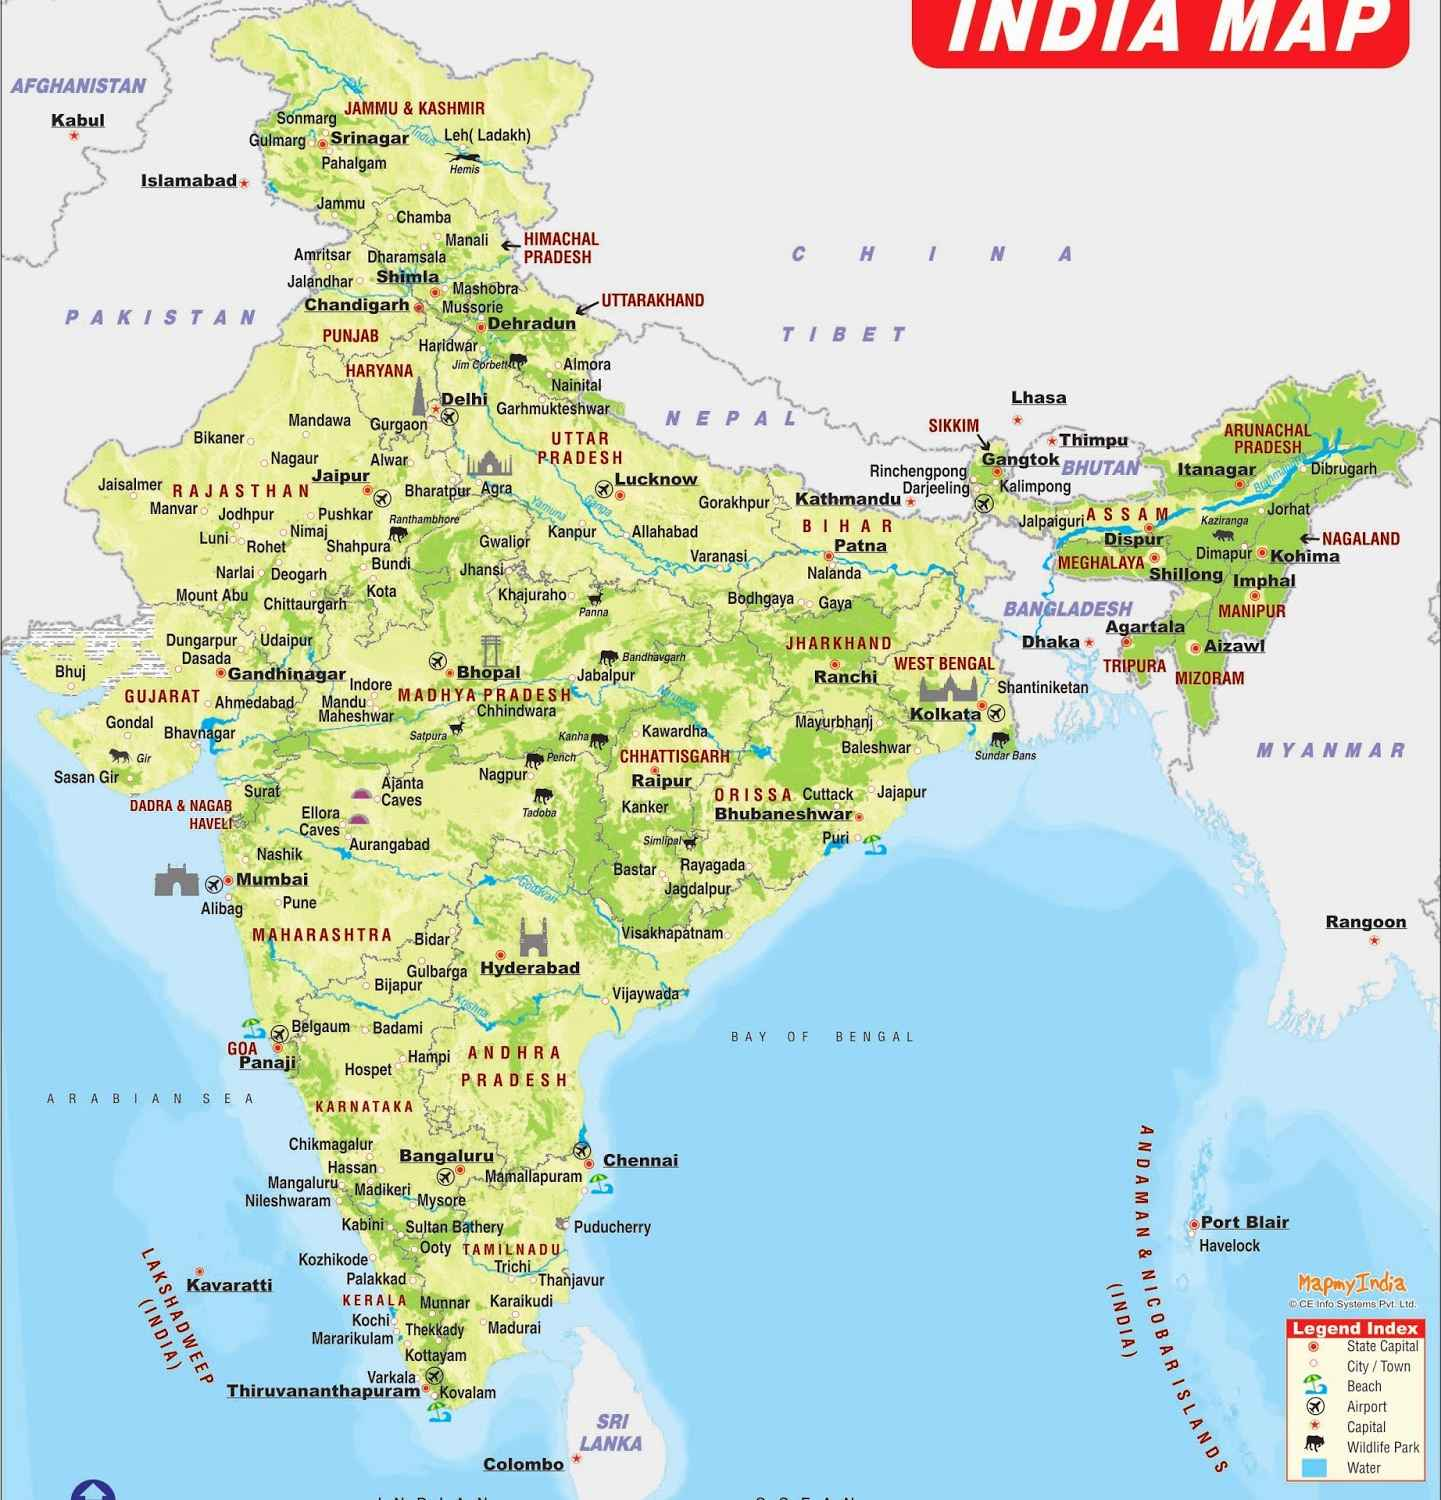 india map hd images India Map Wallpapers For Mobile Wallpaper Cave india map hd images